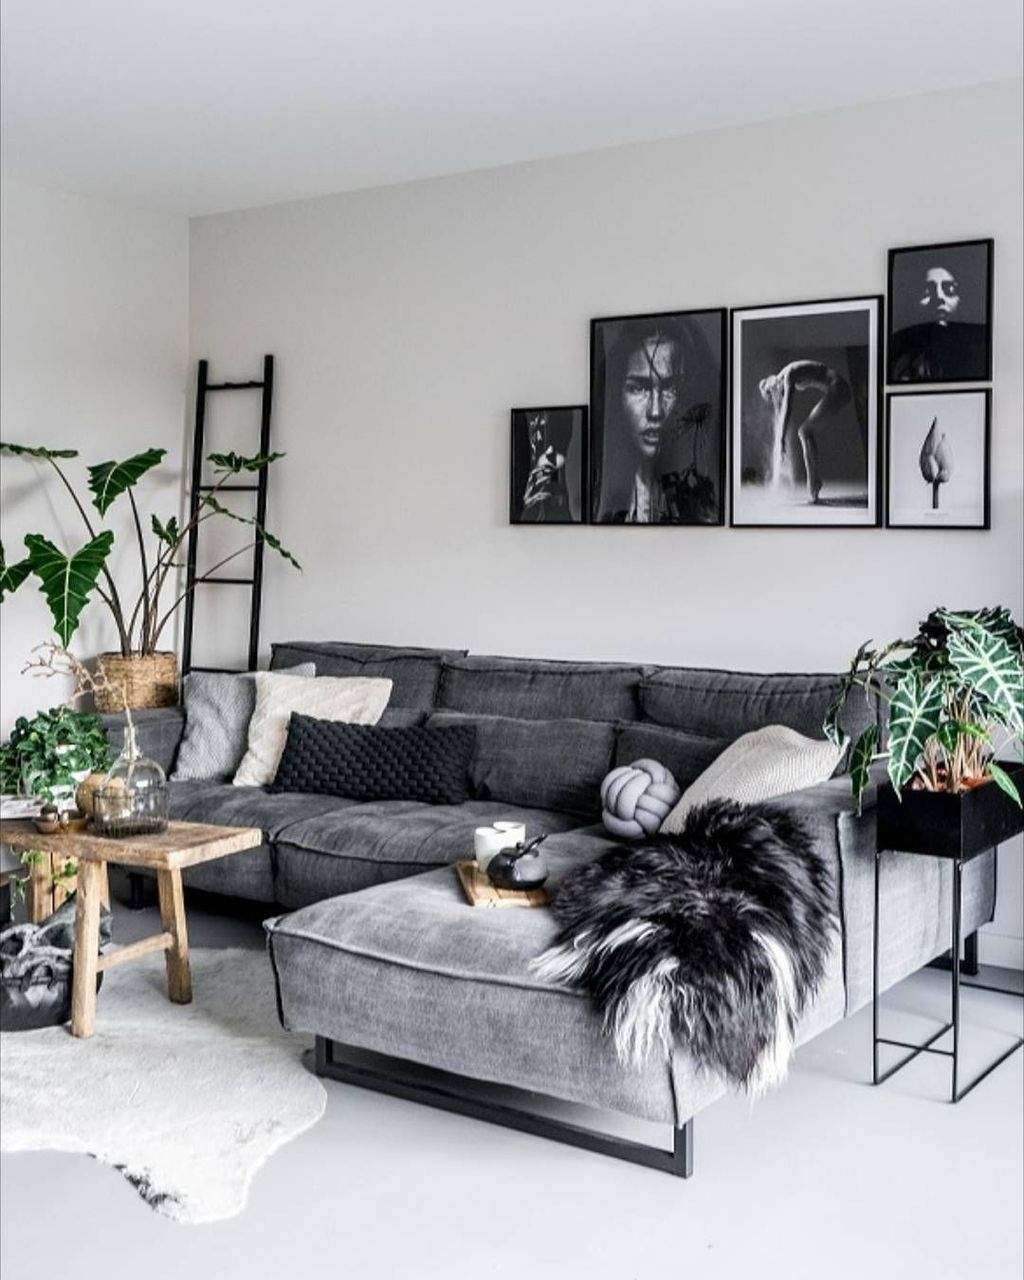 20+ Cute Monochrome Living Room Decoration You Must Have 30+ Monochrome Living Room Decorating Inspirations